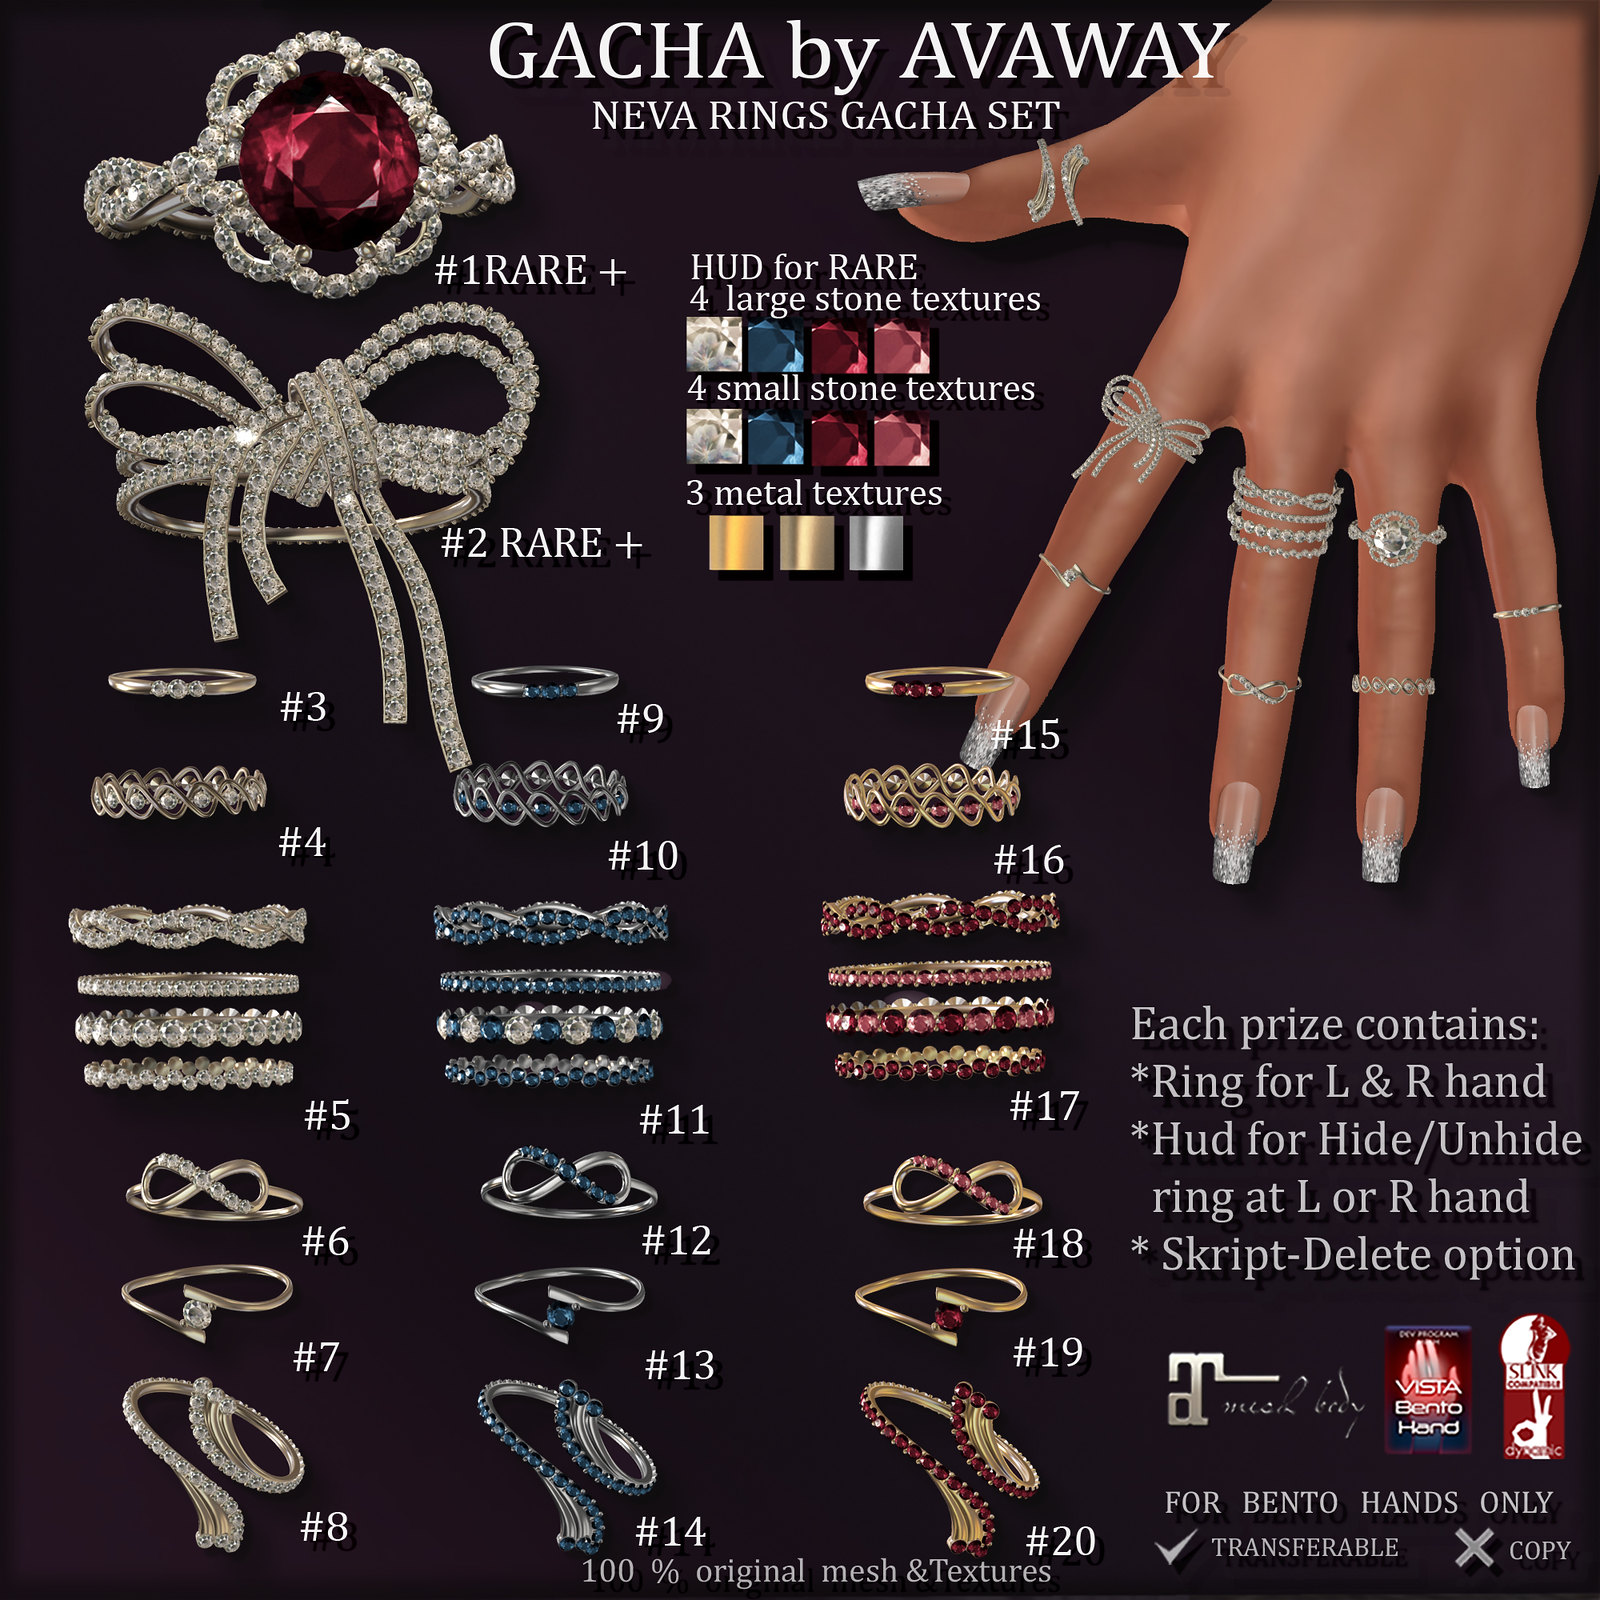 *AvaWay* NEVA RINGS GACHA SET (for Maitreya, Vista & Slink bento hands)